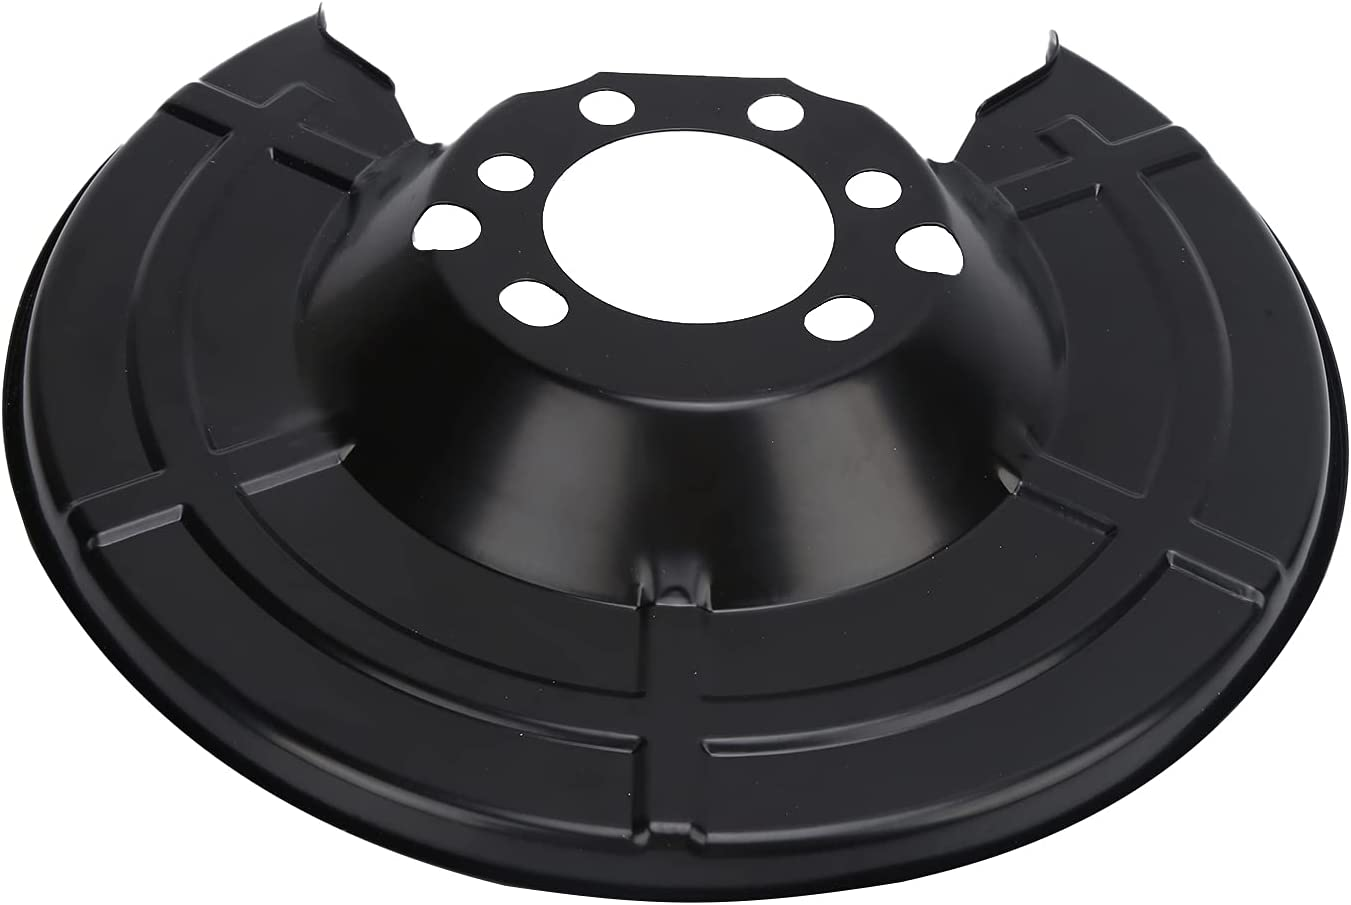 Auto Parts Brake Special price Disc Dust for 90498290 Replacement Shield Cover shopping